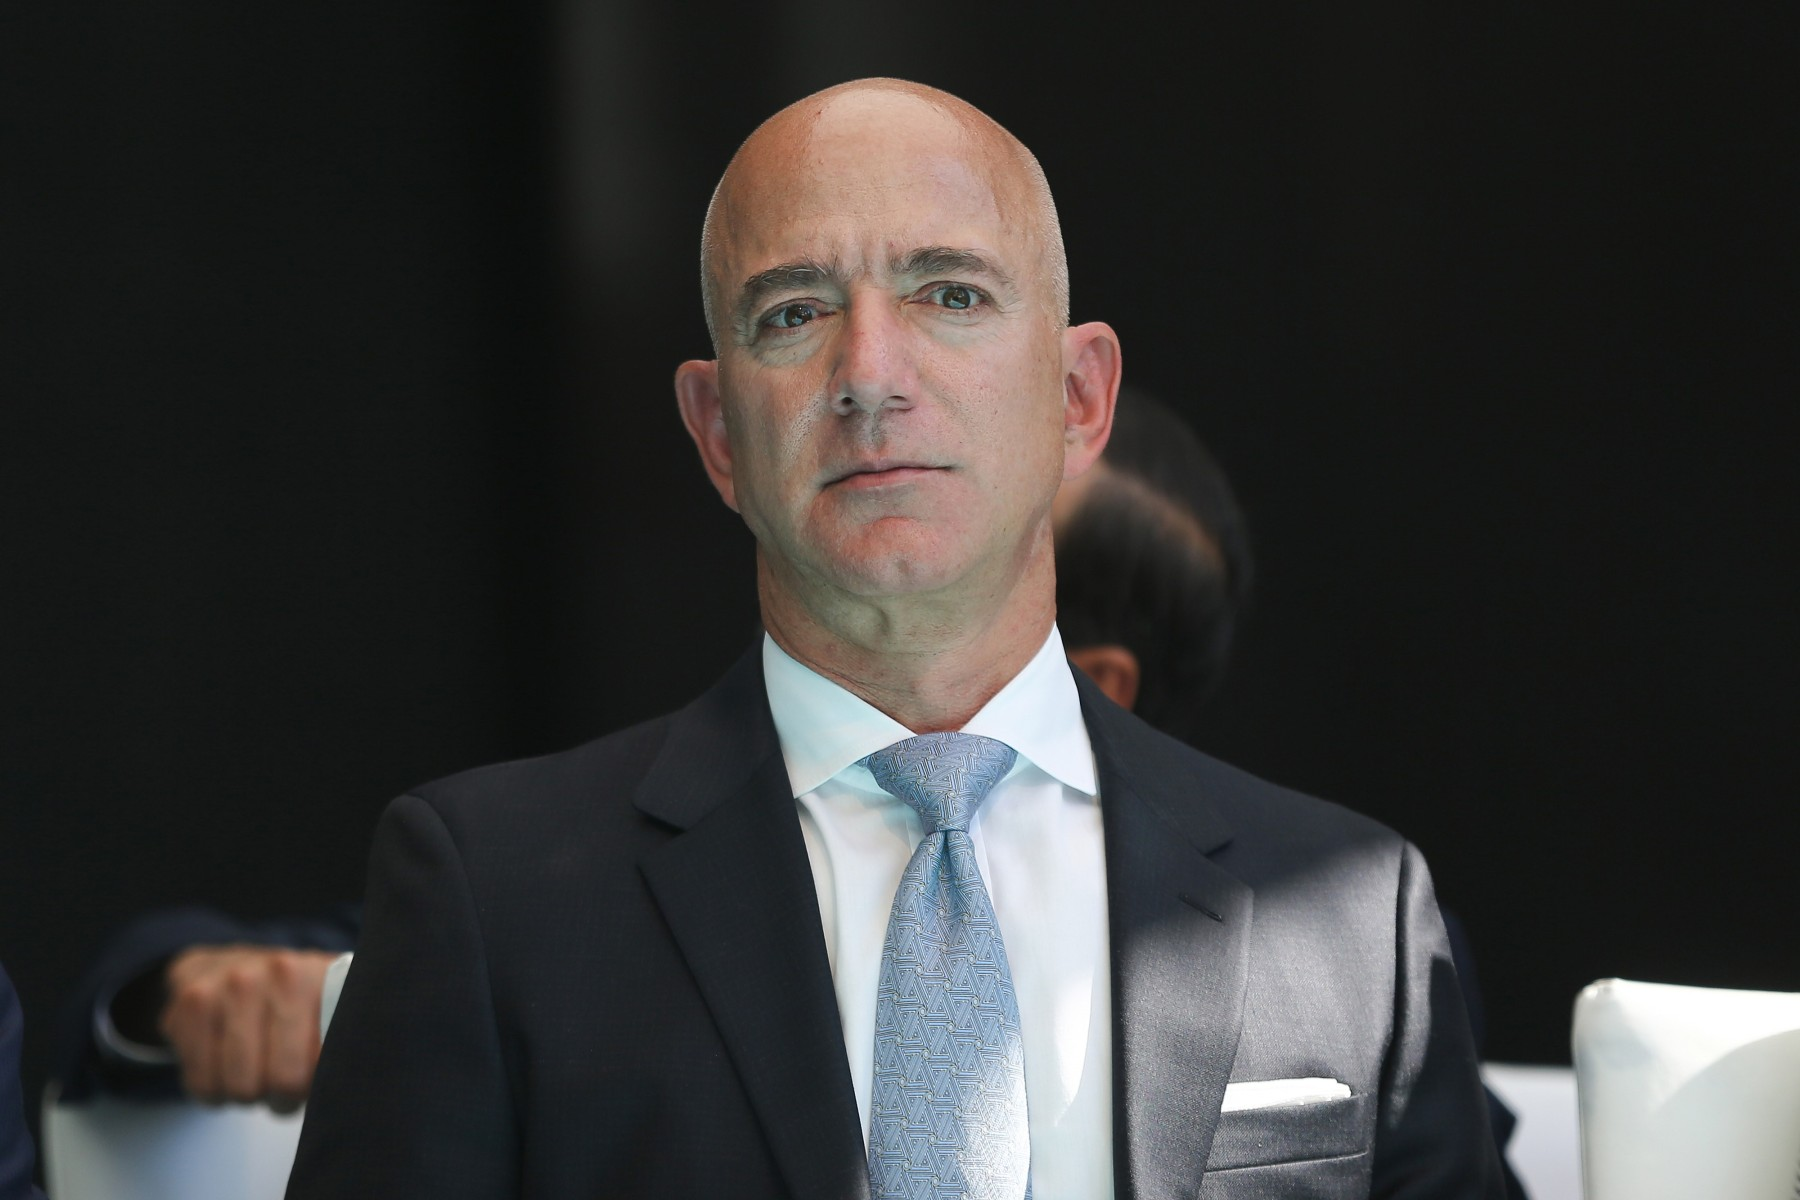 Jeff Bezos Makes Record-Breaking Real Estate Purchase in California